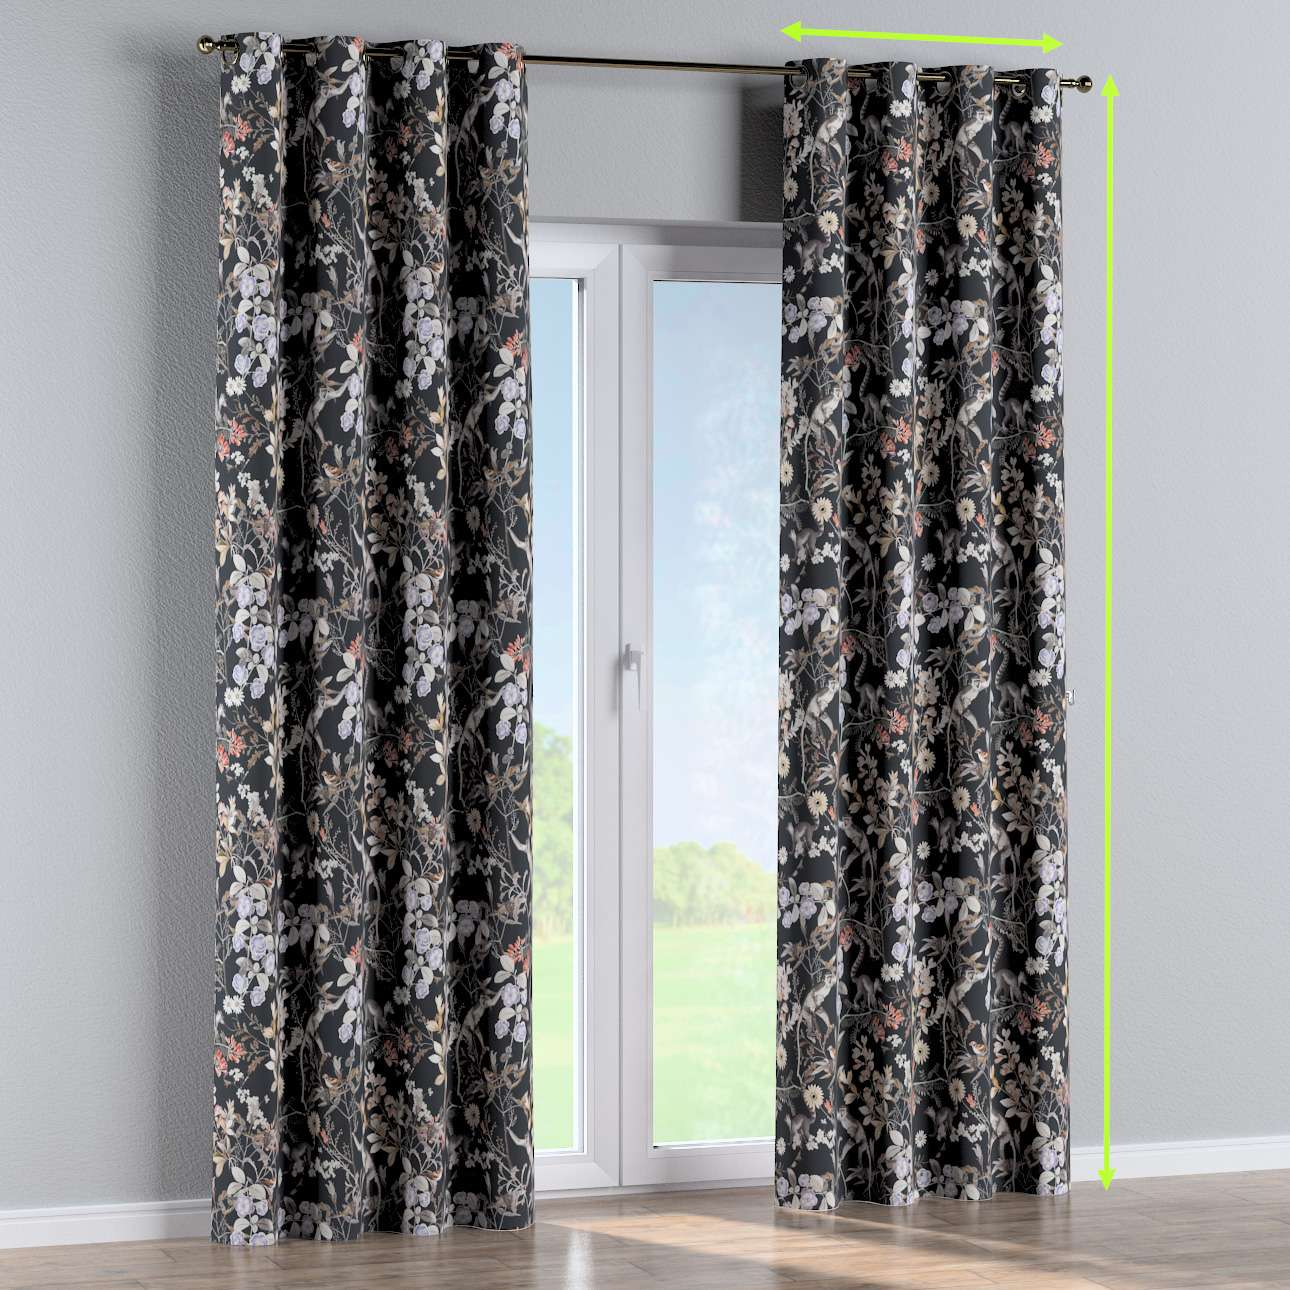 Eyelet curtain in collection Tropical Island, fabric: 142-60